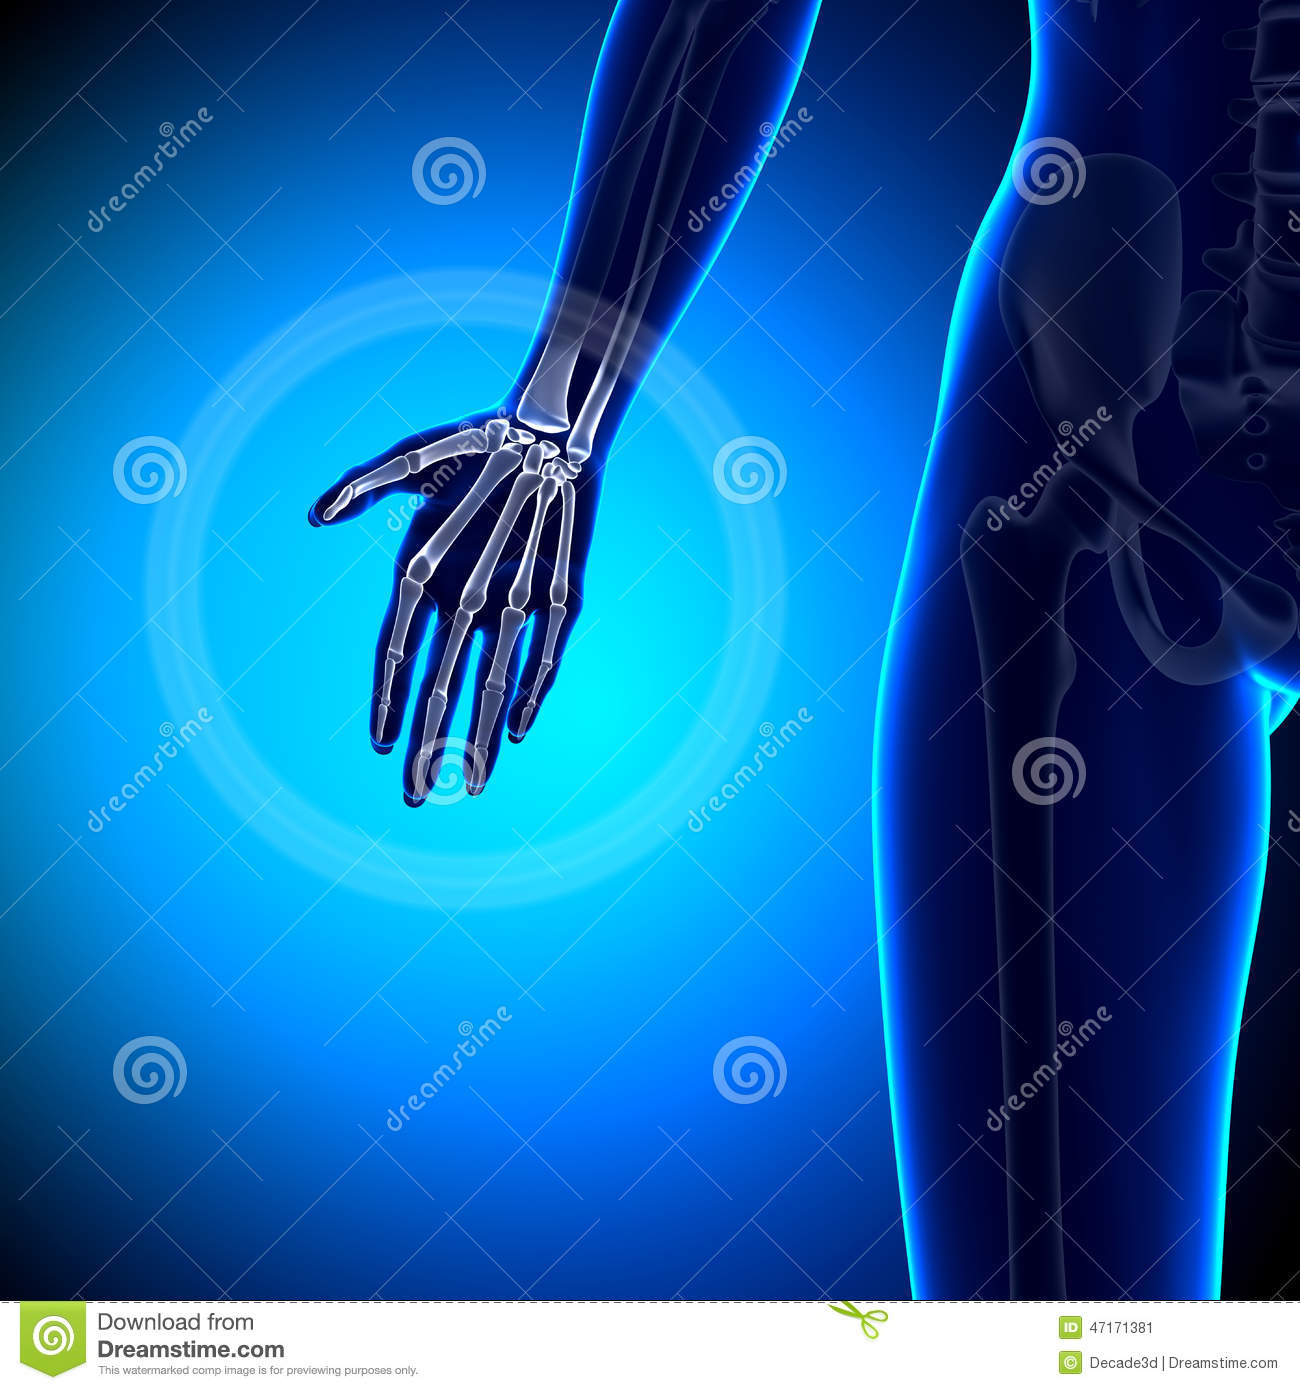 Weibliche Anatomie Stock Photos - Royalty Free Pictures